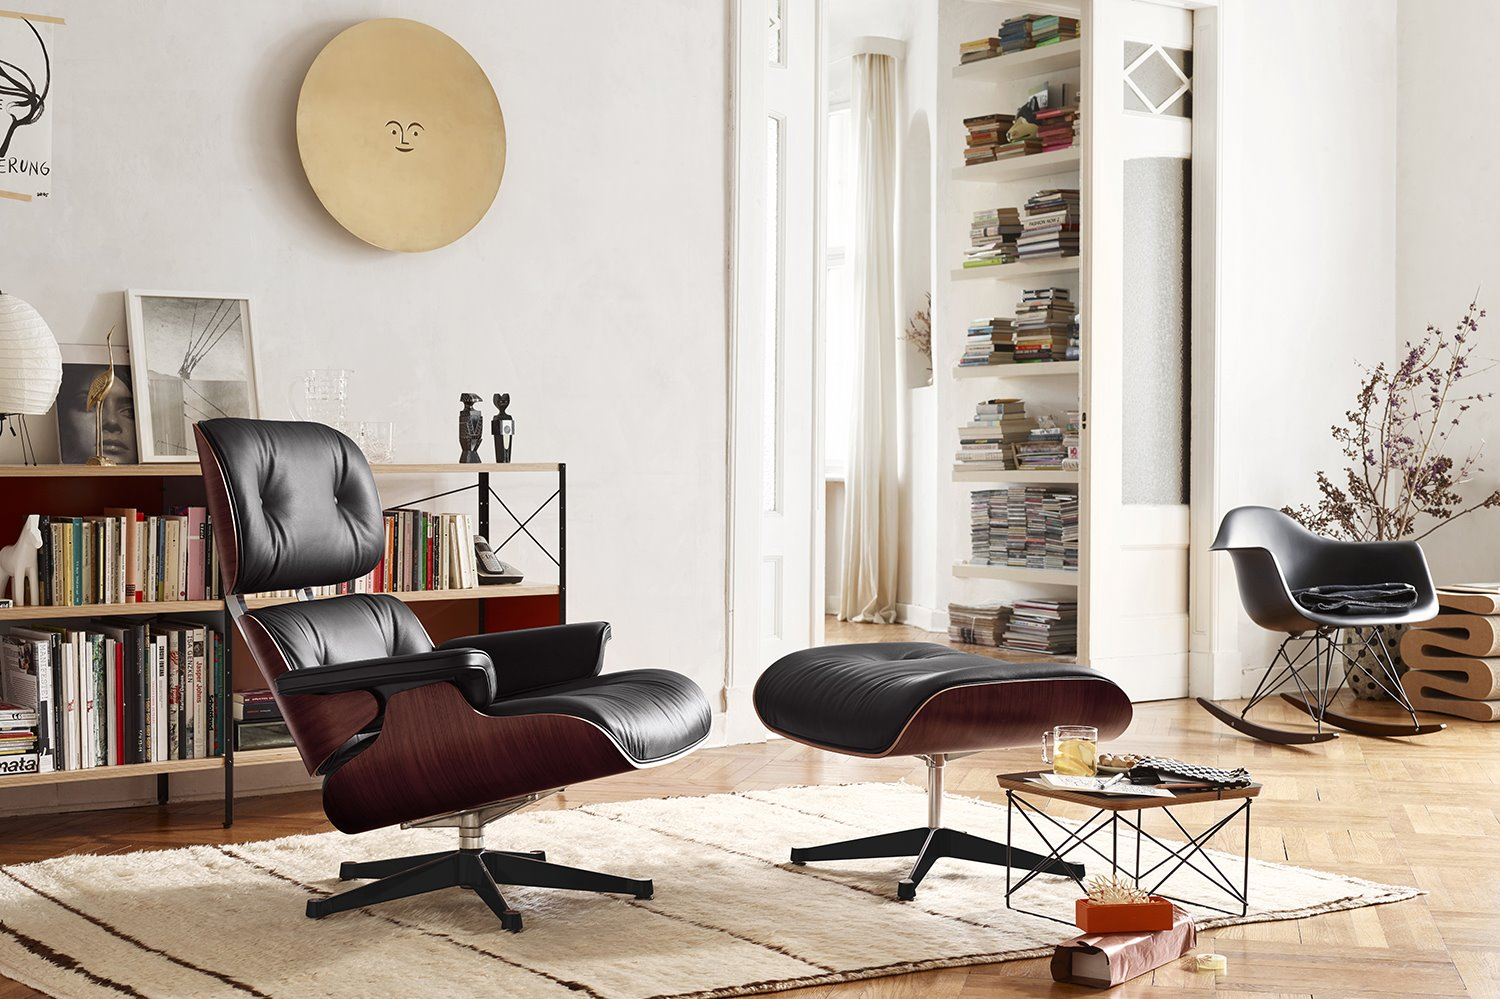 eames 2887841 Lounge Chair y otomana